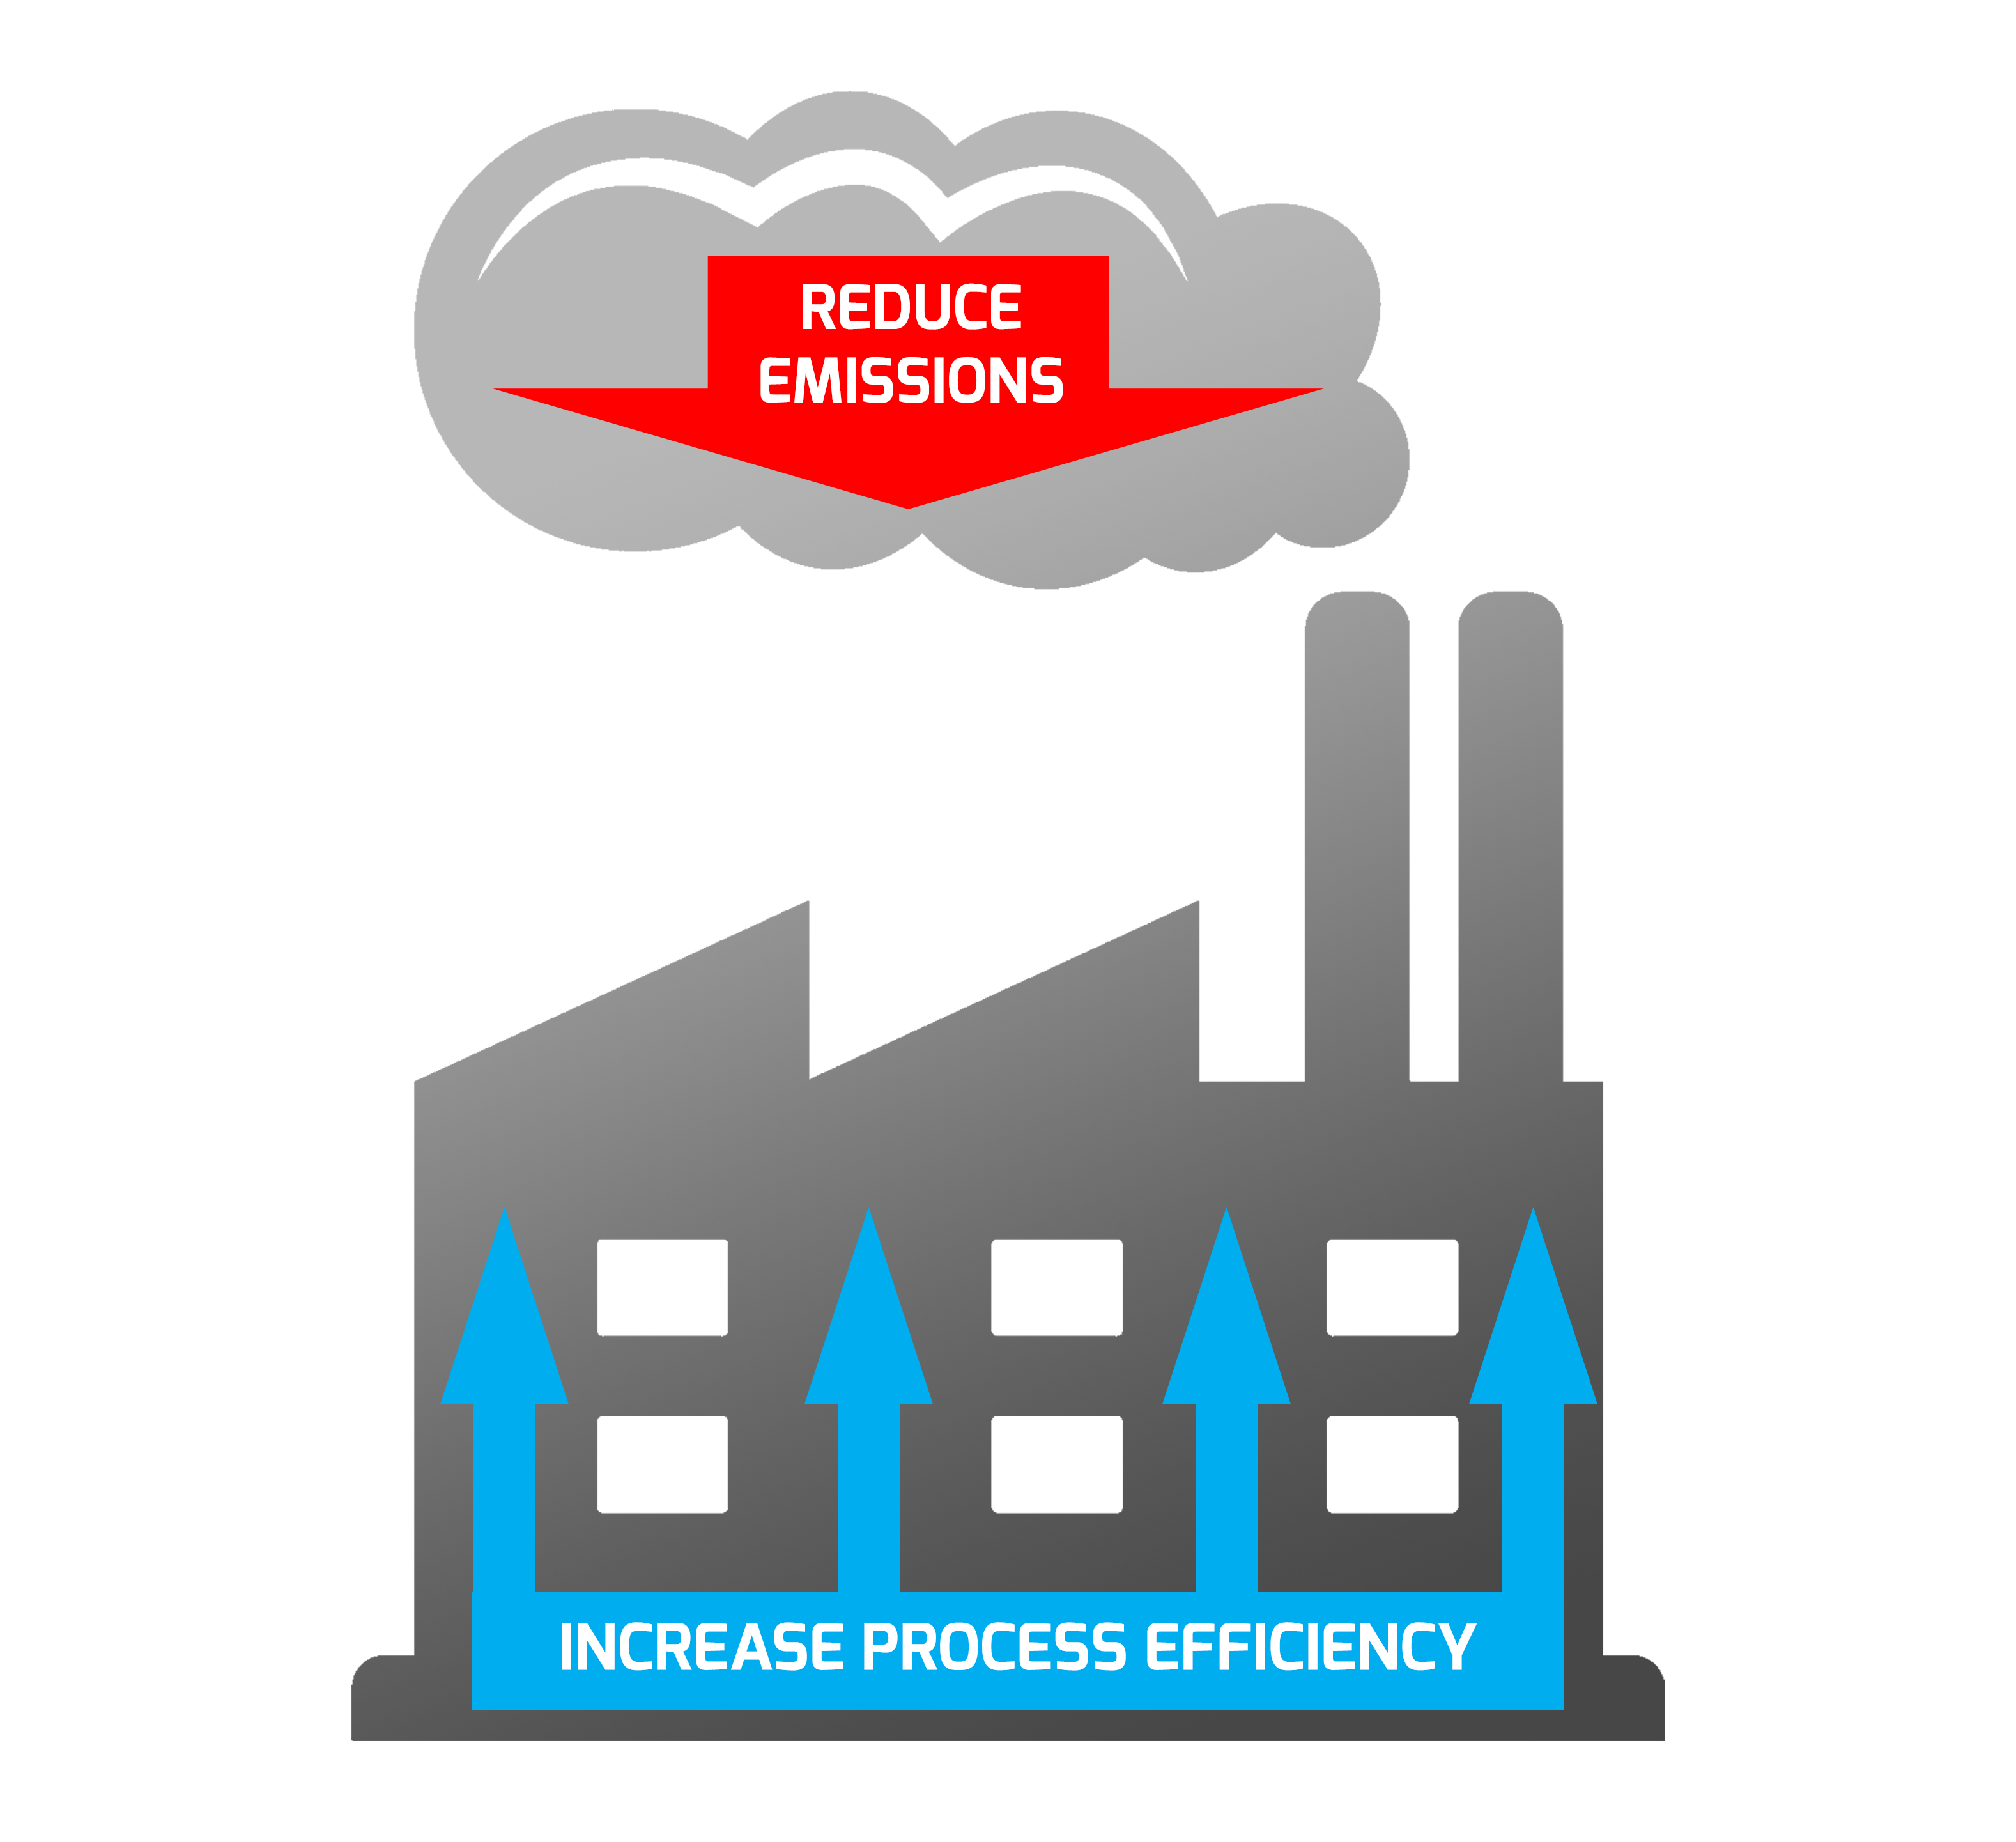 Reducing emissions and at the same time increasing process efficiency – is it possible?